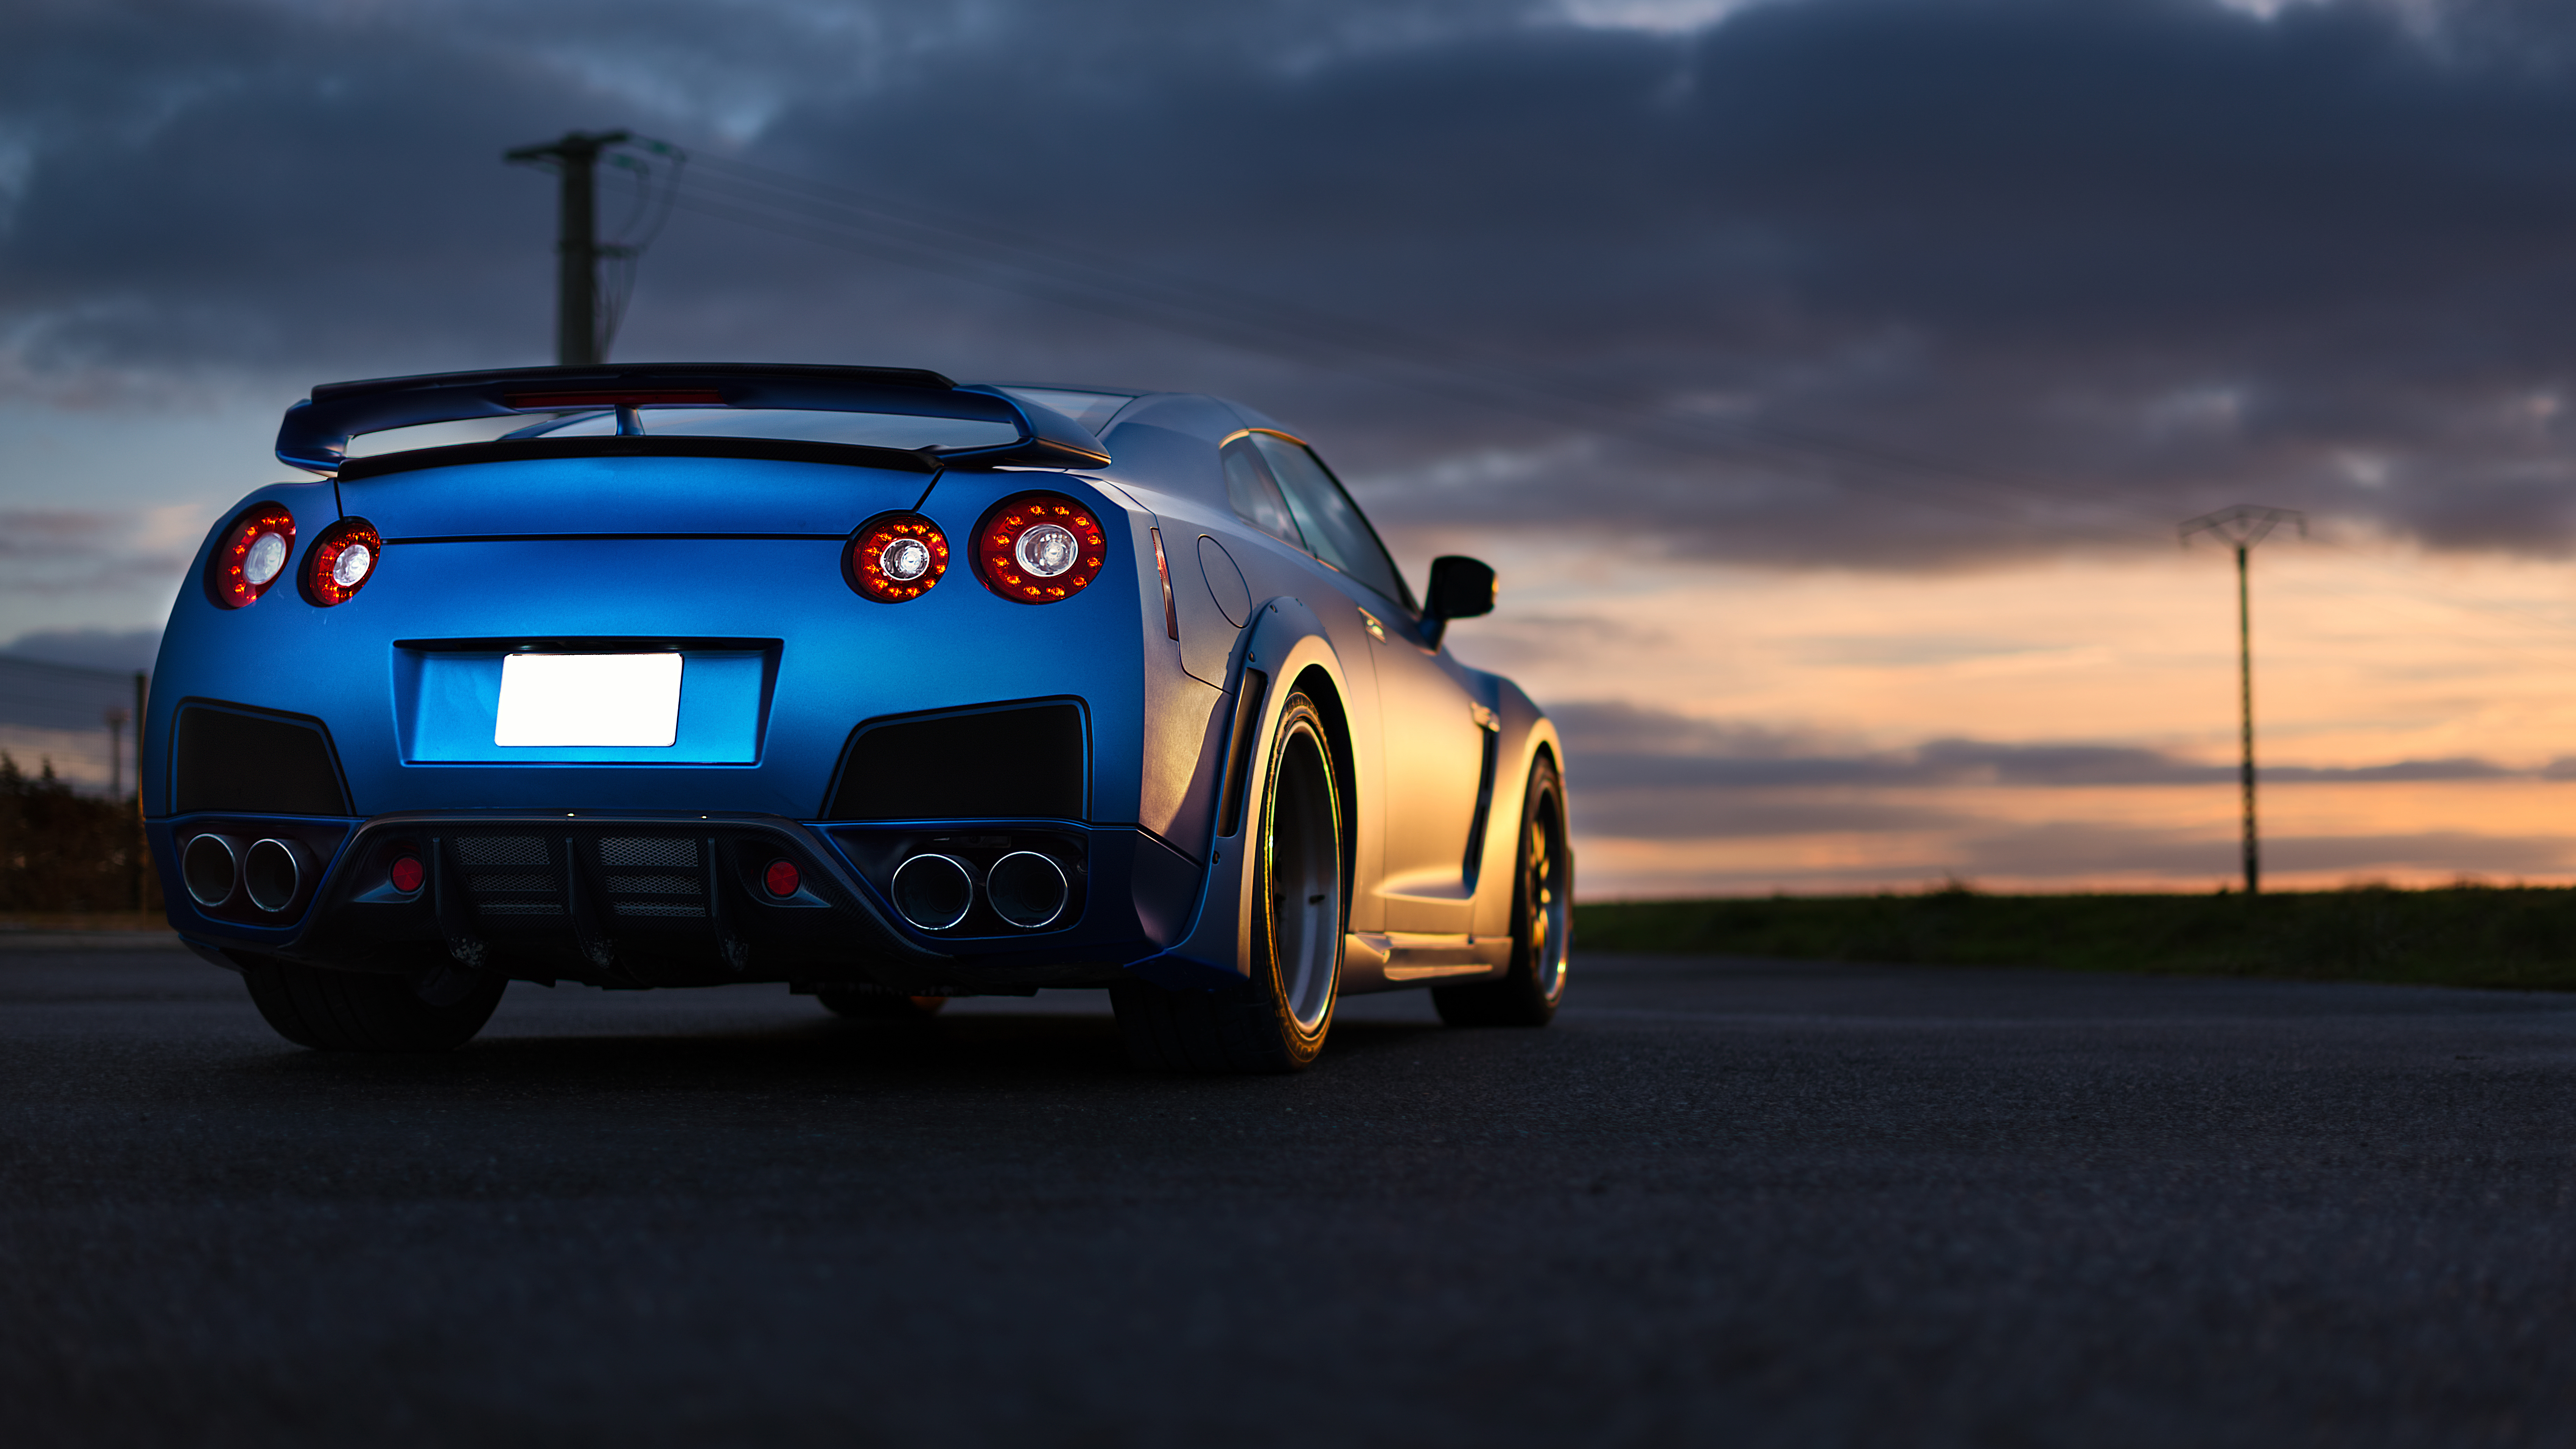 Nissan Gtr 8k Hd Cars 4k Wallpapers Images Backgrounds Photos And Pictures